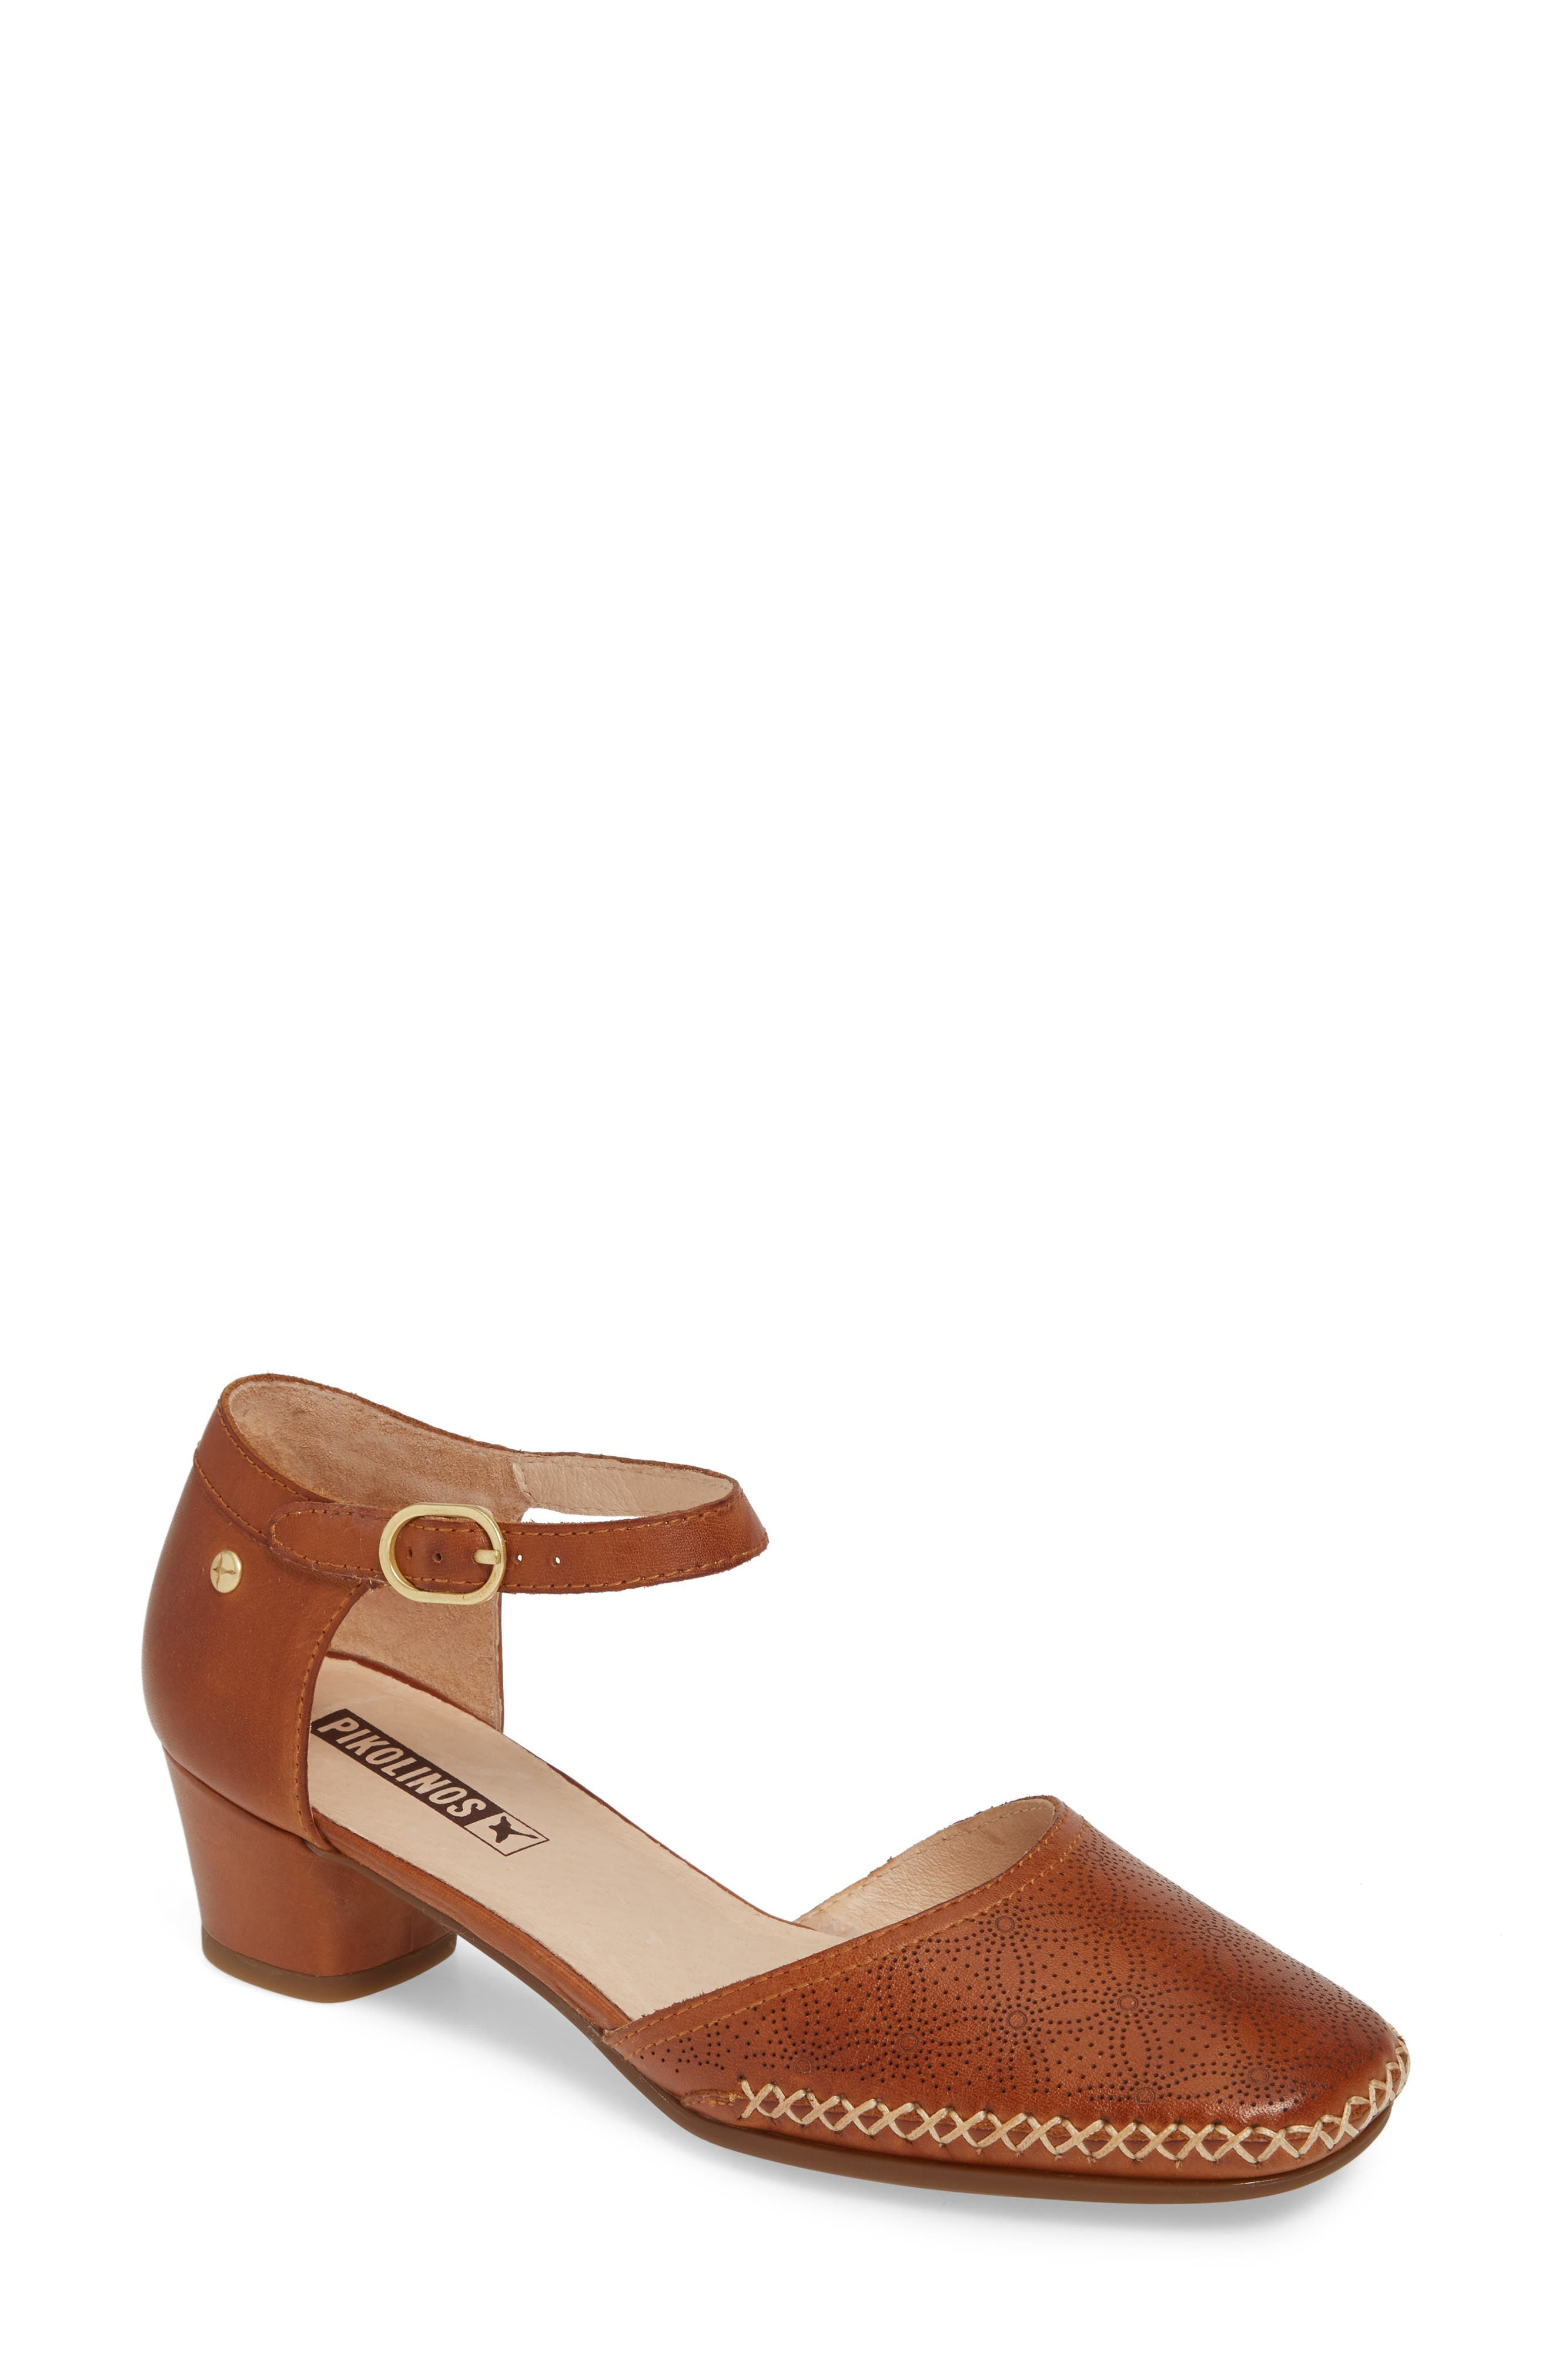 Pikolinos Gomera Ankle Strap Pump, Brown